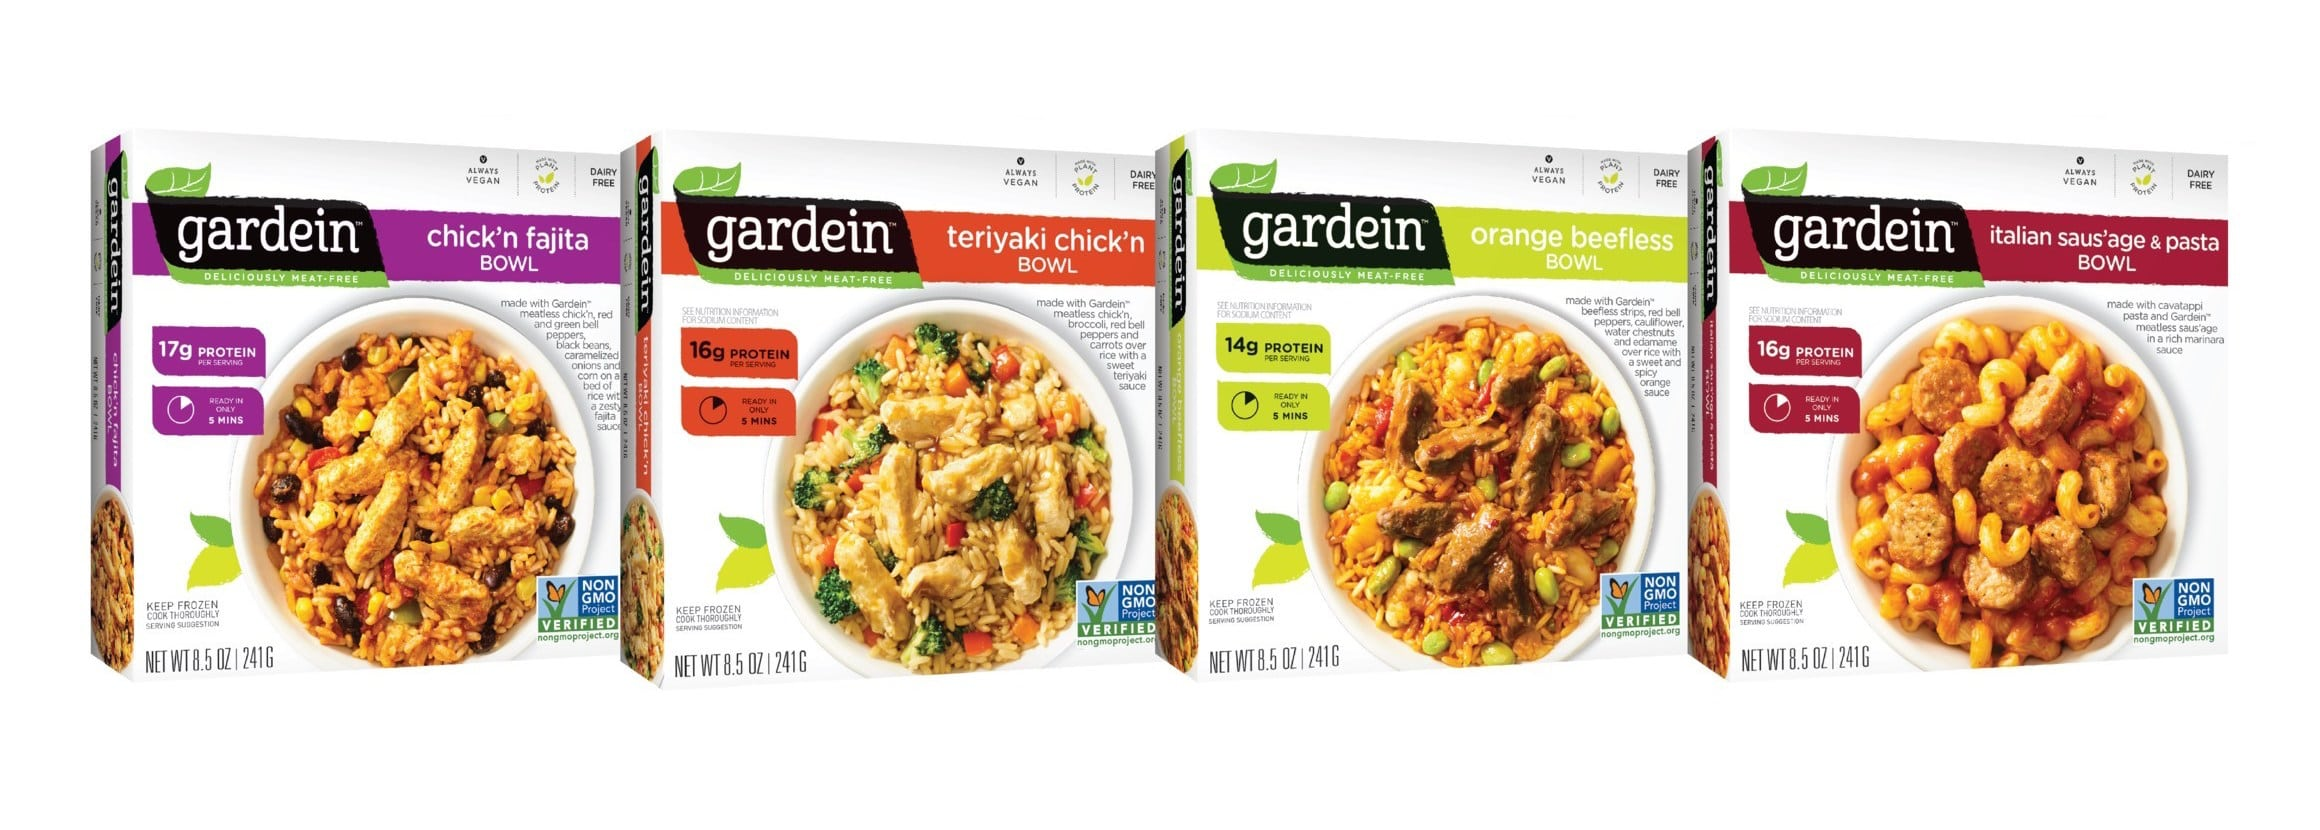 Gardein Expands Plant-Based Offerings with the Launch of Single Serve Bowls and Breakfast Saus'age Pattie